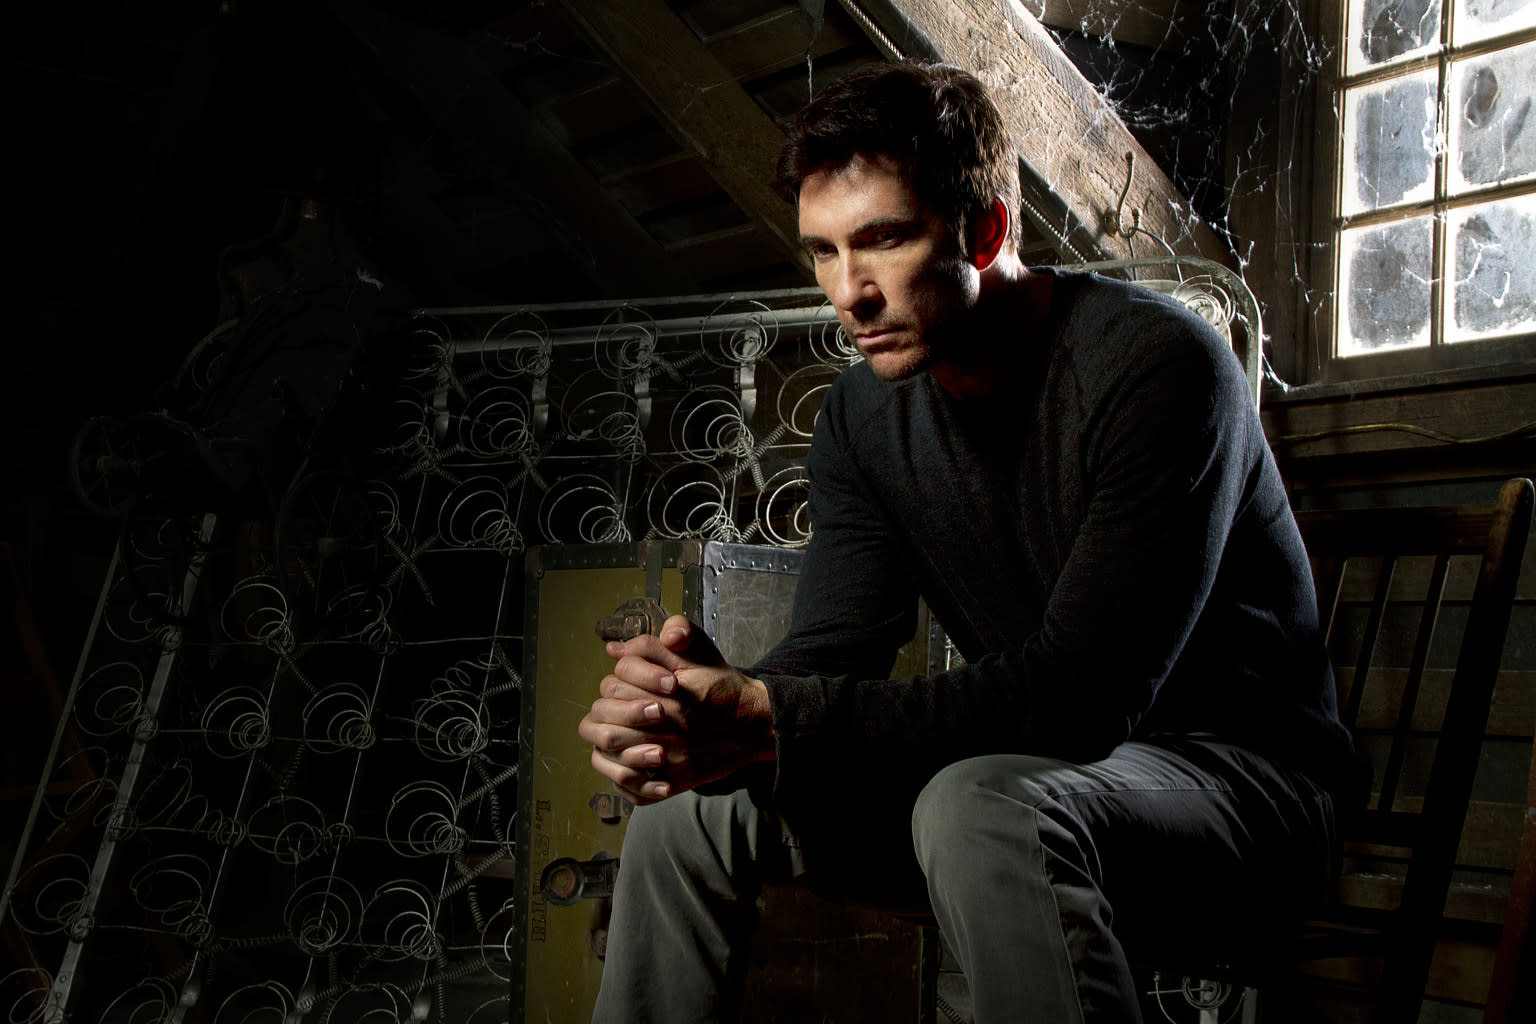 Yahoo! TV Q&A: Dylan McDermott on his return to 'American Horror Story'